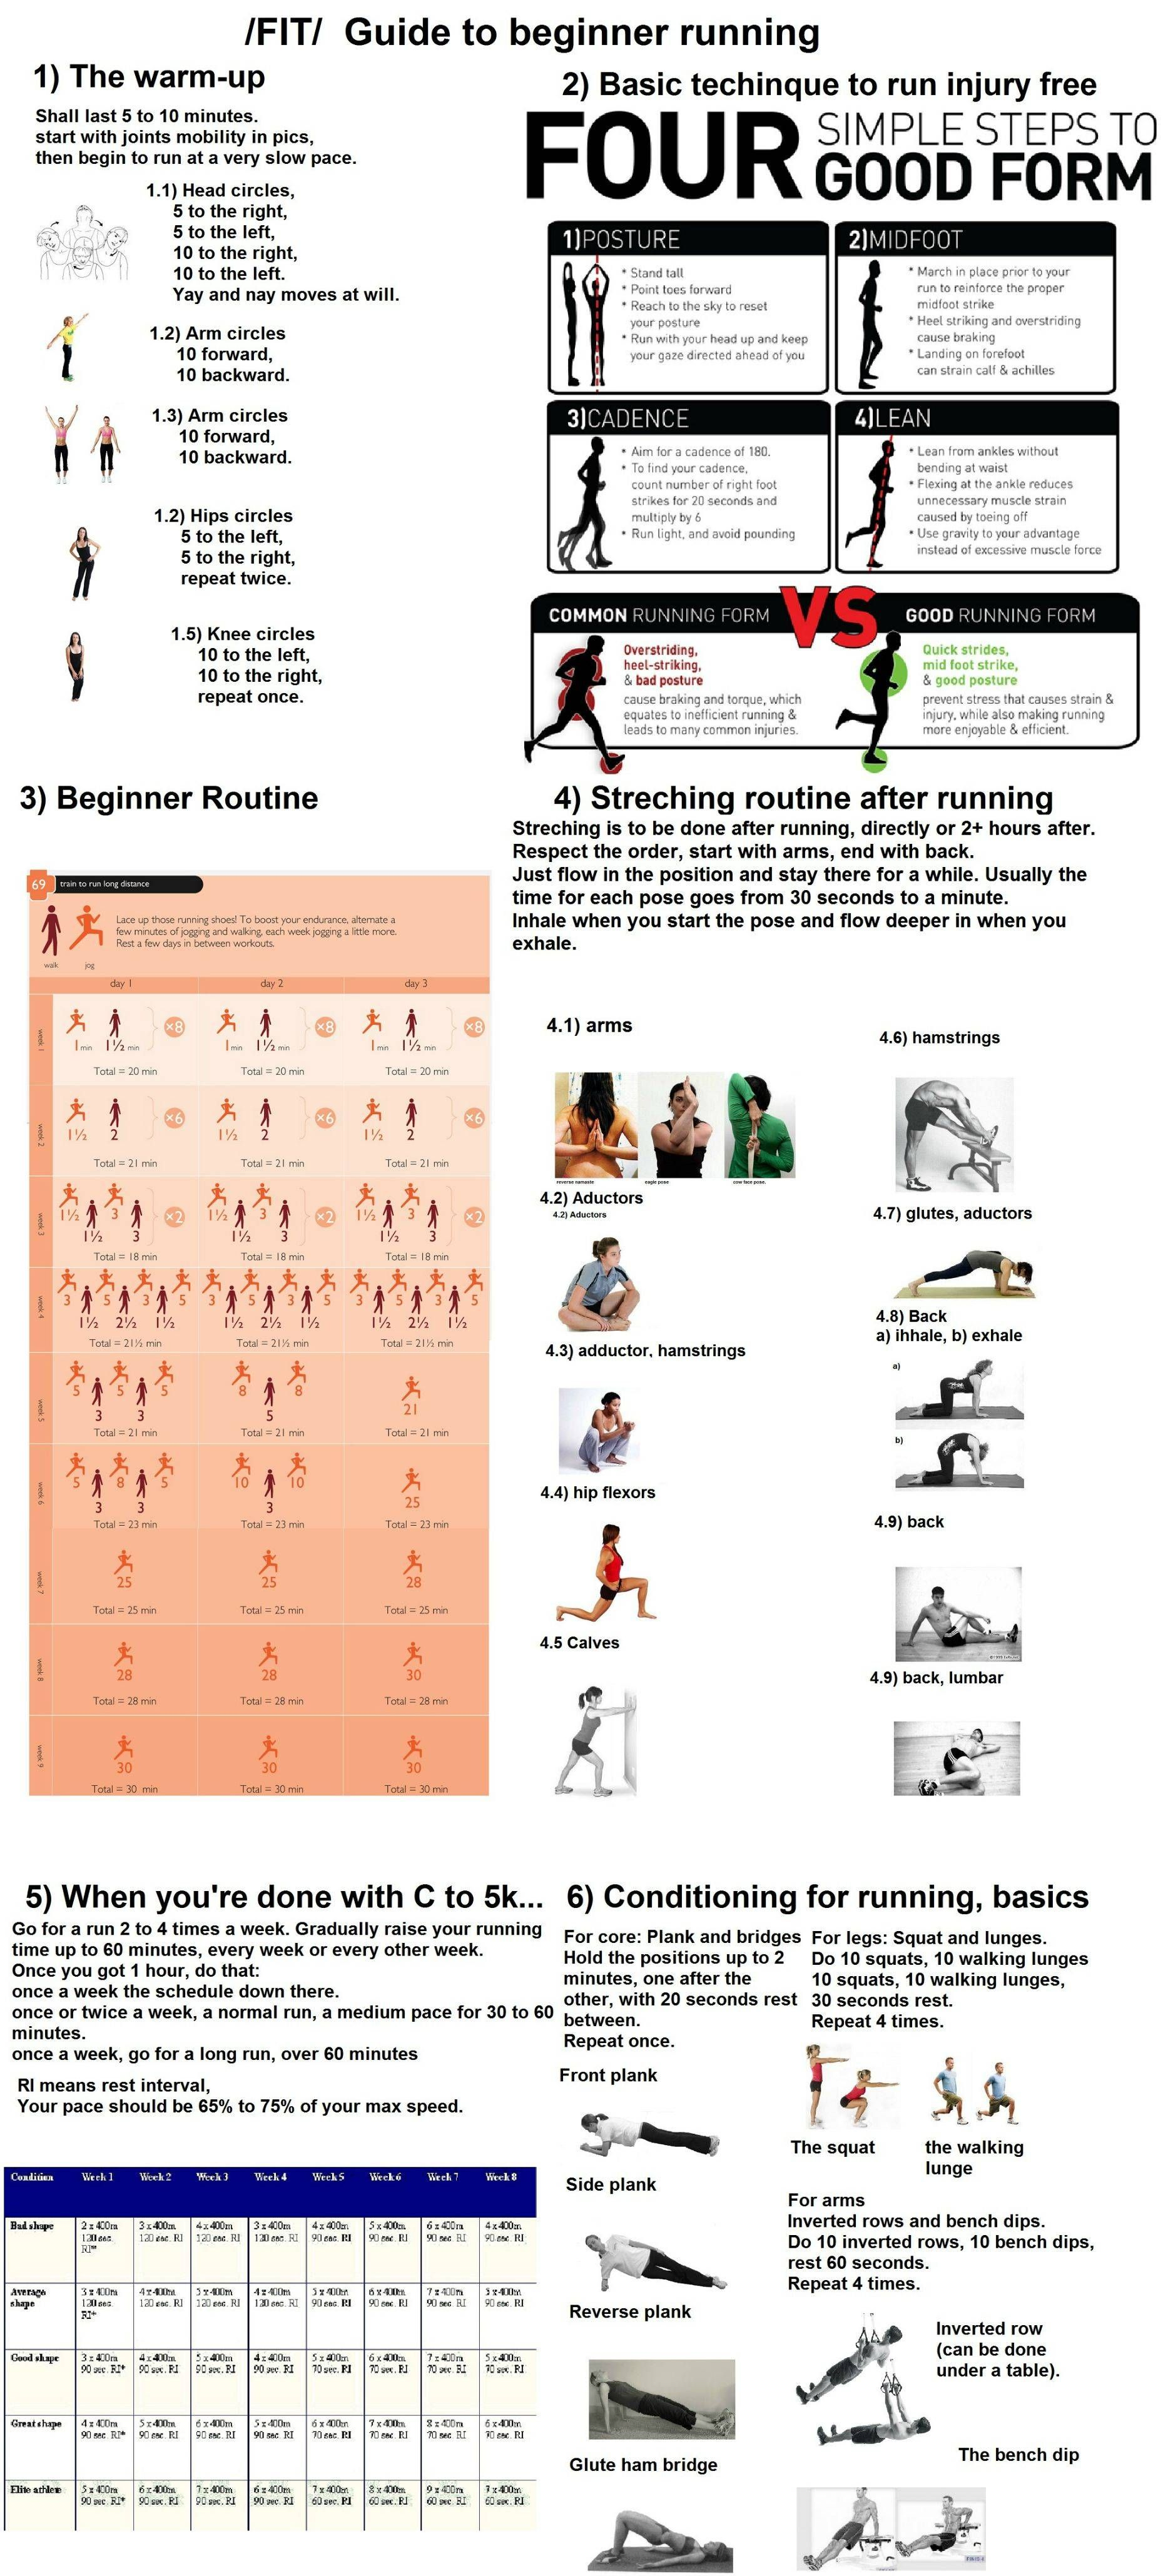 Discussion on this topic: Beginner's Guide to Running, beginners-guide-to-running/